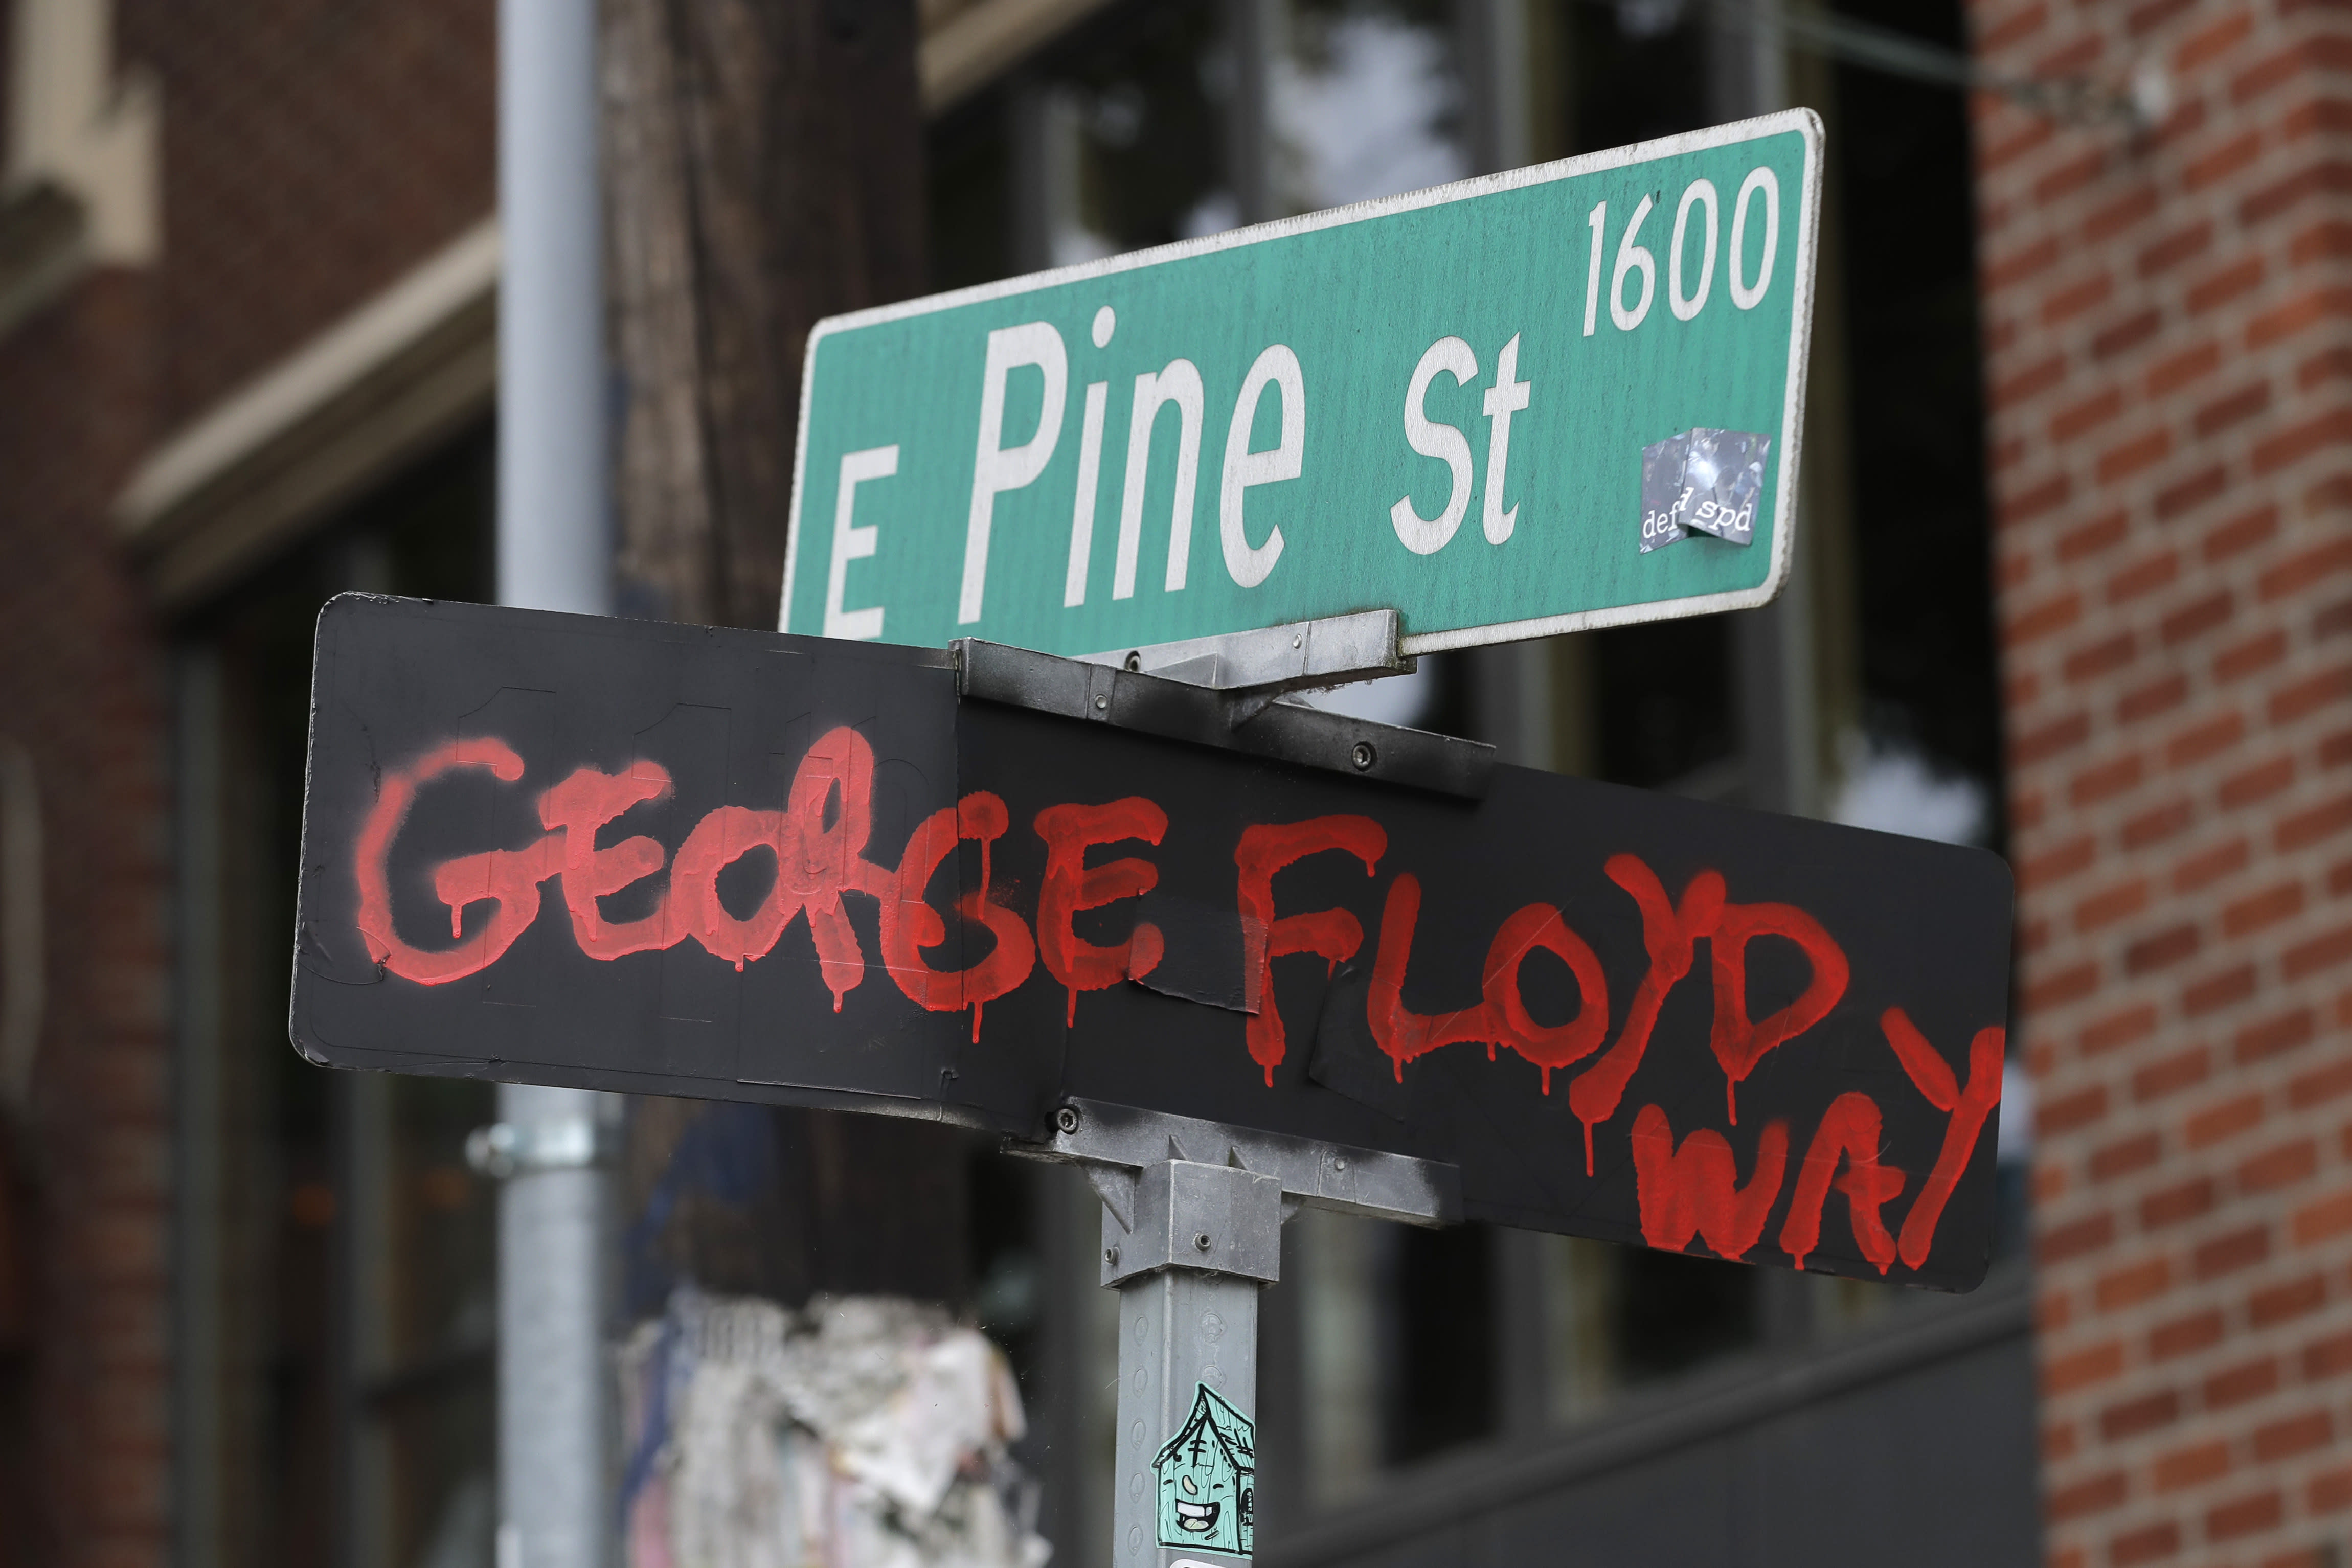 "A street sign at the intersection of 11th Ave. and Pine St. has been changed to read ""George Floyd Way,"" Wednesday, June 24, 2020, inside the CHOP (Capitol Hill Occupied Protest) zone in Seattle. The area has been occupied since a police station was largely abandoned after clashes with protesters, but Seattle Mayor Jenny Durkan said Monday that the city would move to wind down the protest zone following several nearby shootings and other incidents that have distracted from changes sought by peaceful protesters opposing racial inequity and police brutality. (AP Photo/Ted S. Warren)"